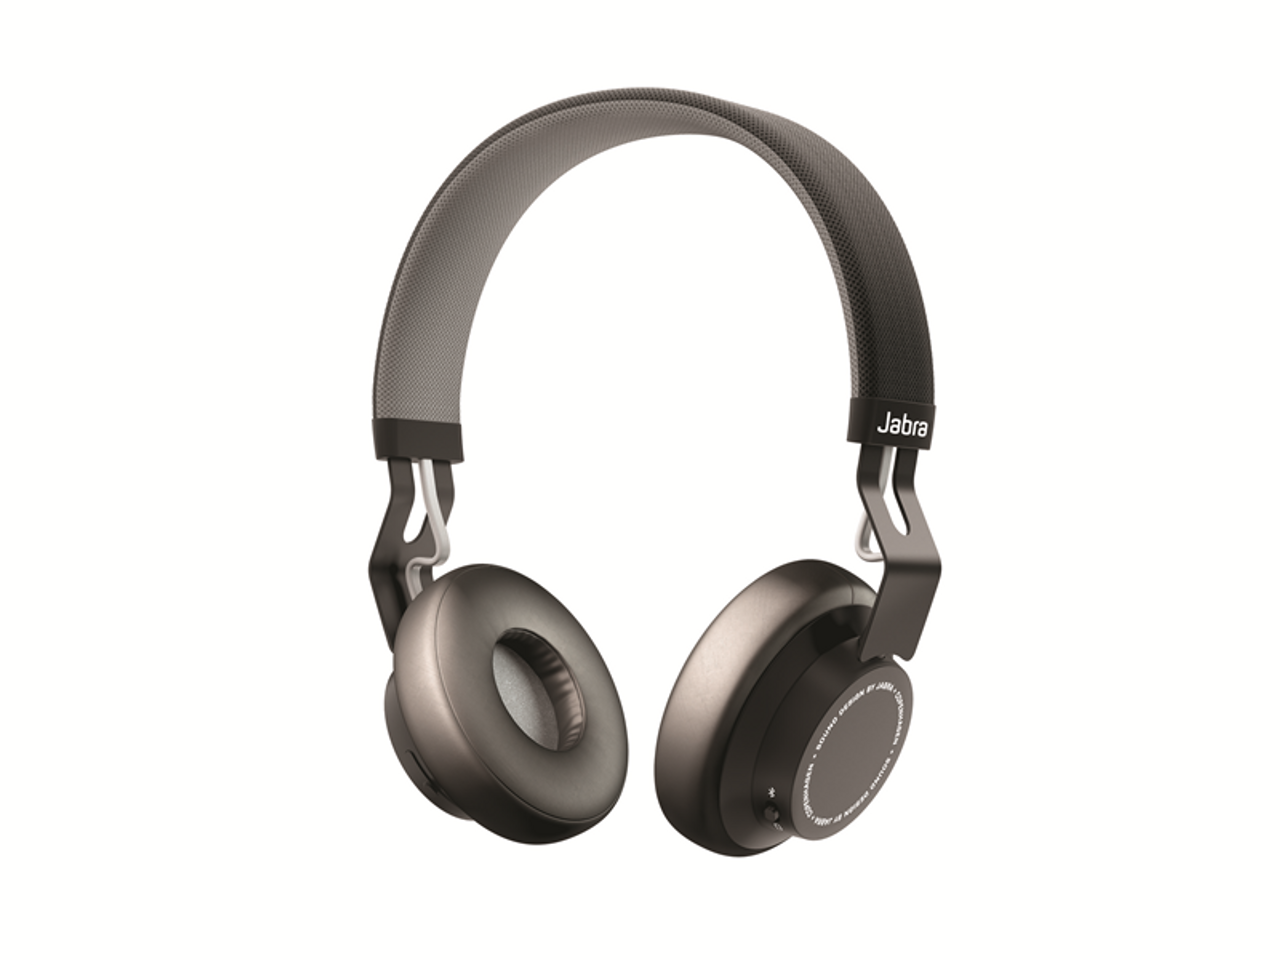 Jabra Move Wireless Headphones With Easy Pairing Clean European Desgined With 8 Hour Cordless Usage Music And Calls 100 96300000 02 100 96300000 02